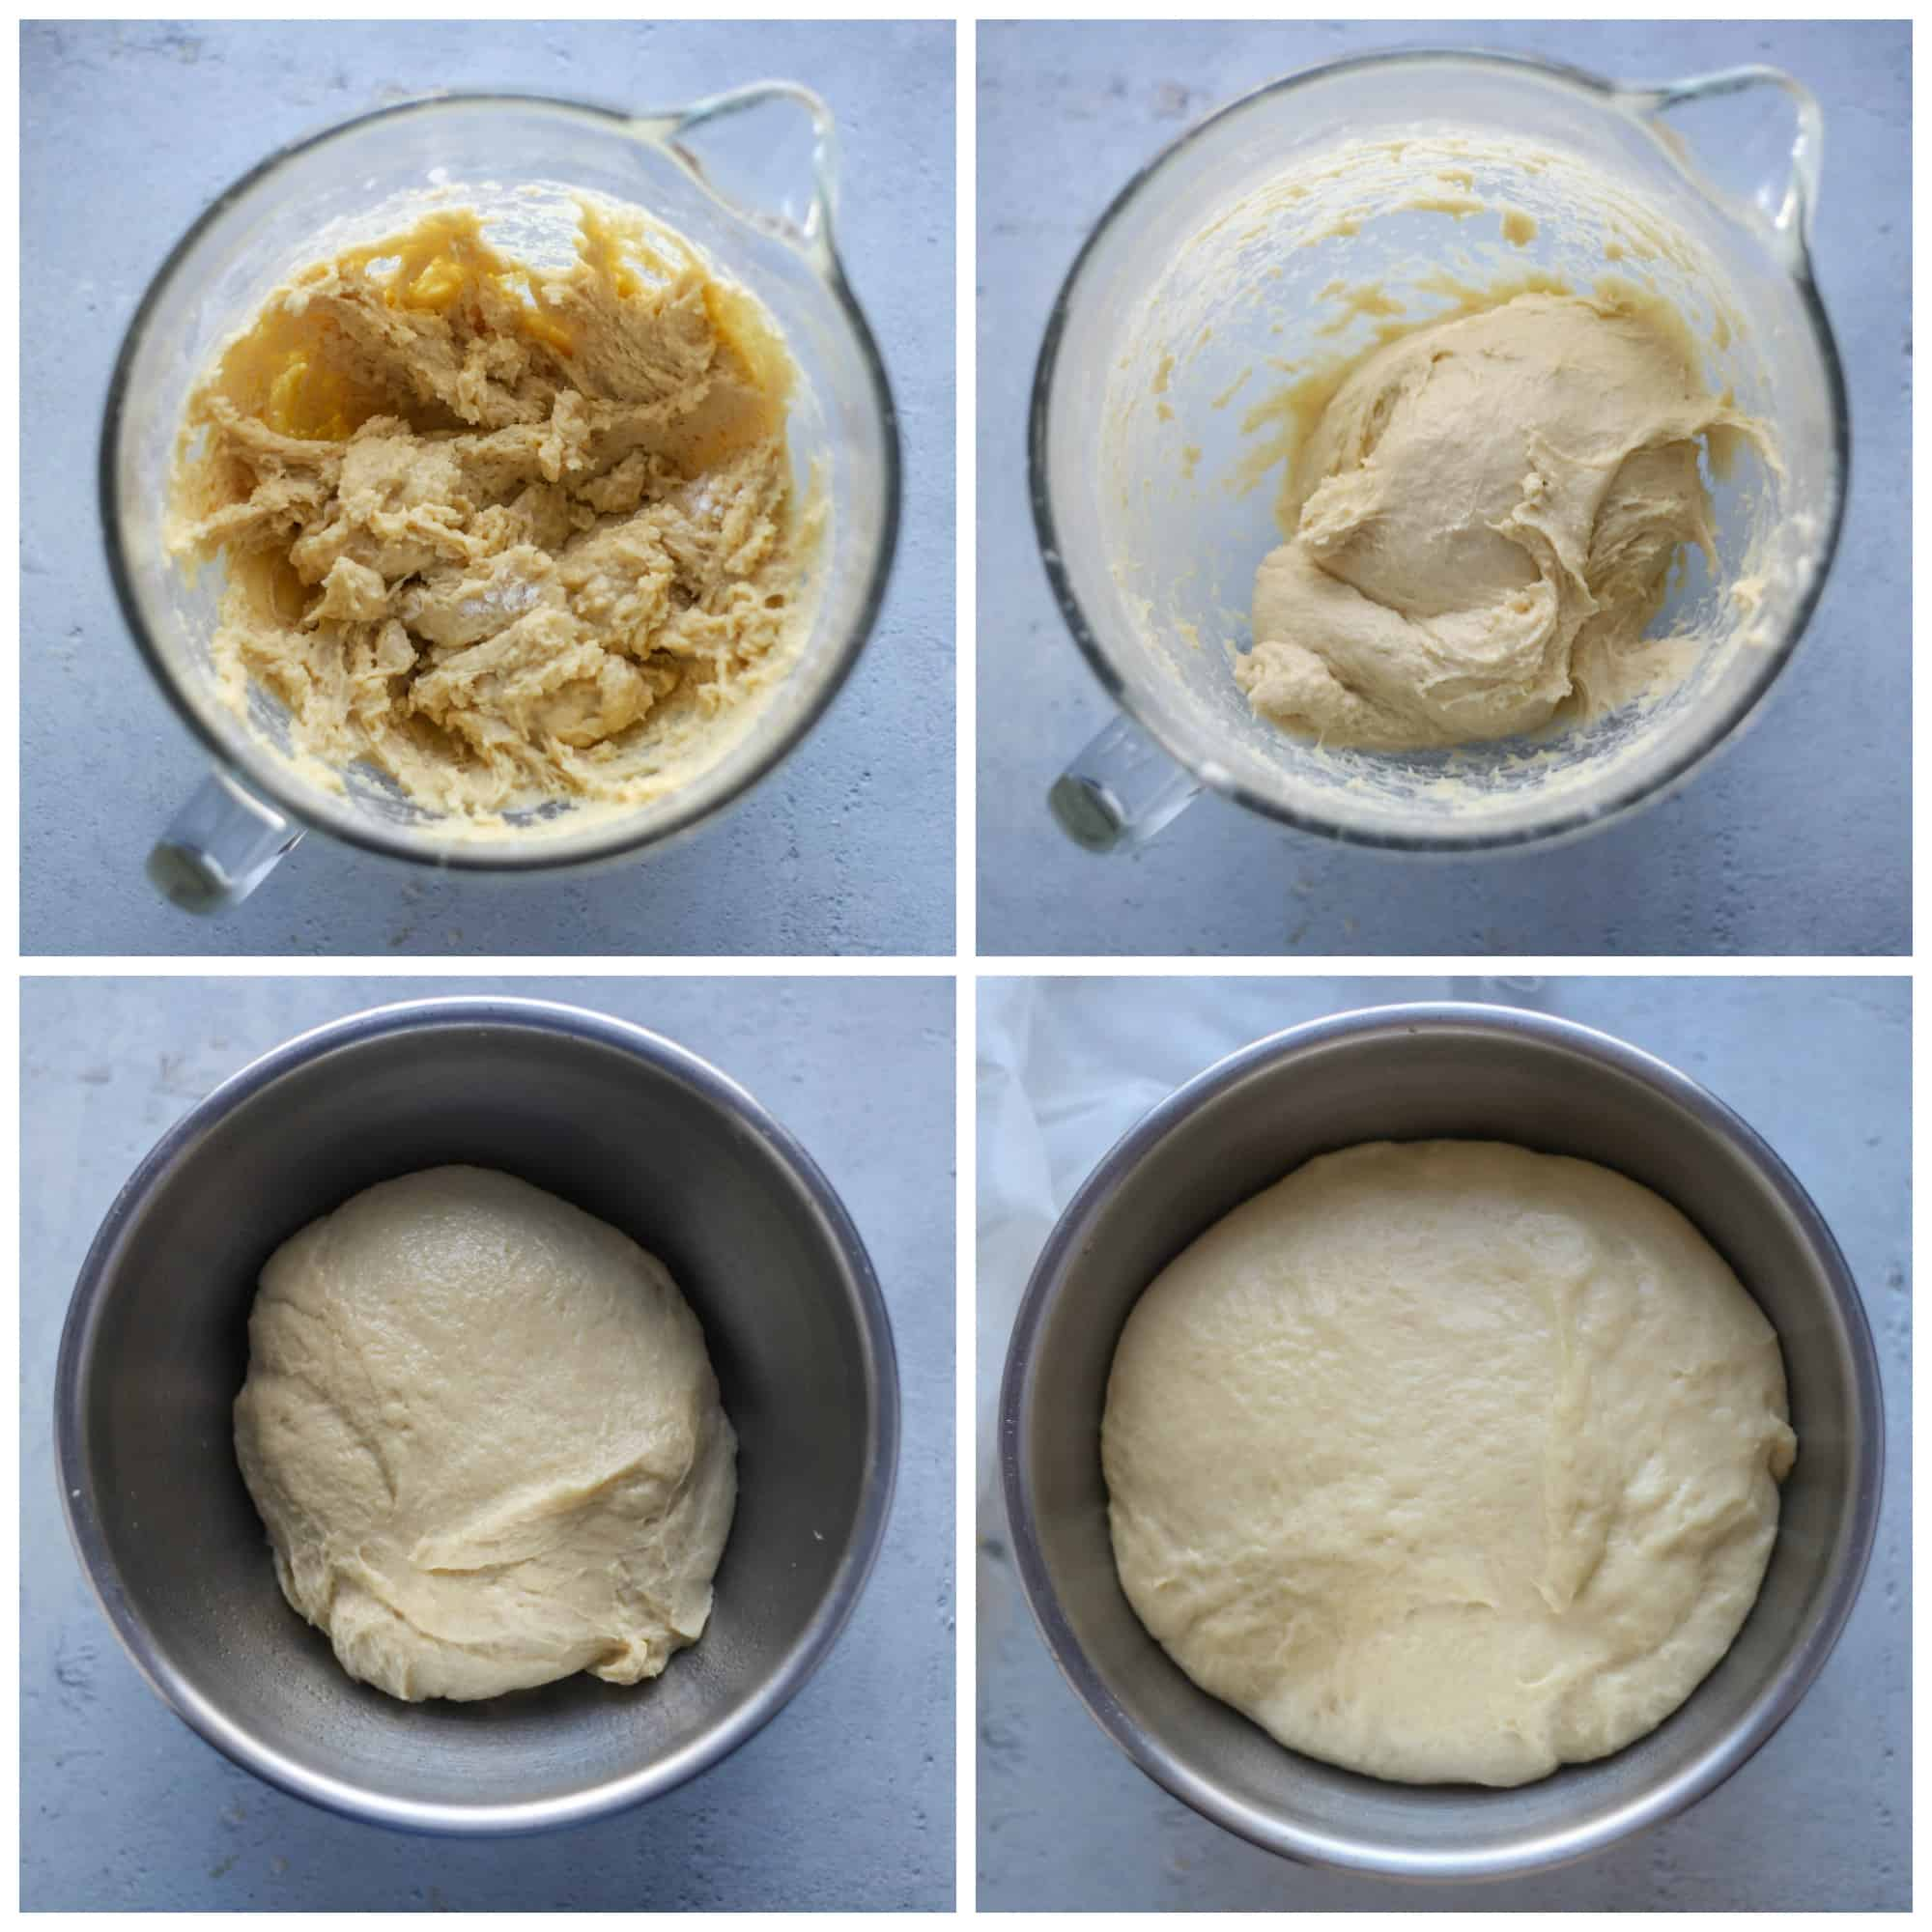 four photos of the dough being made and rising